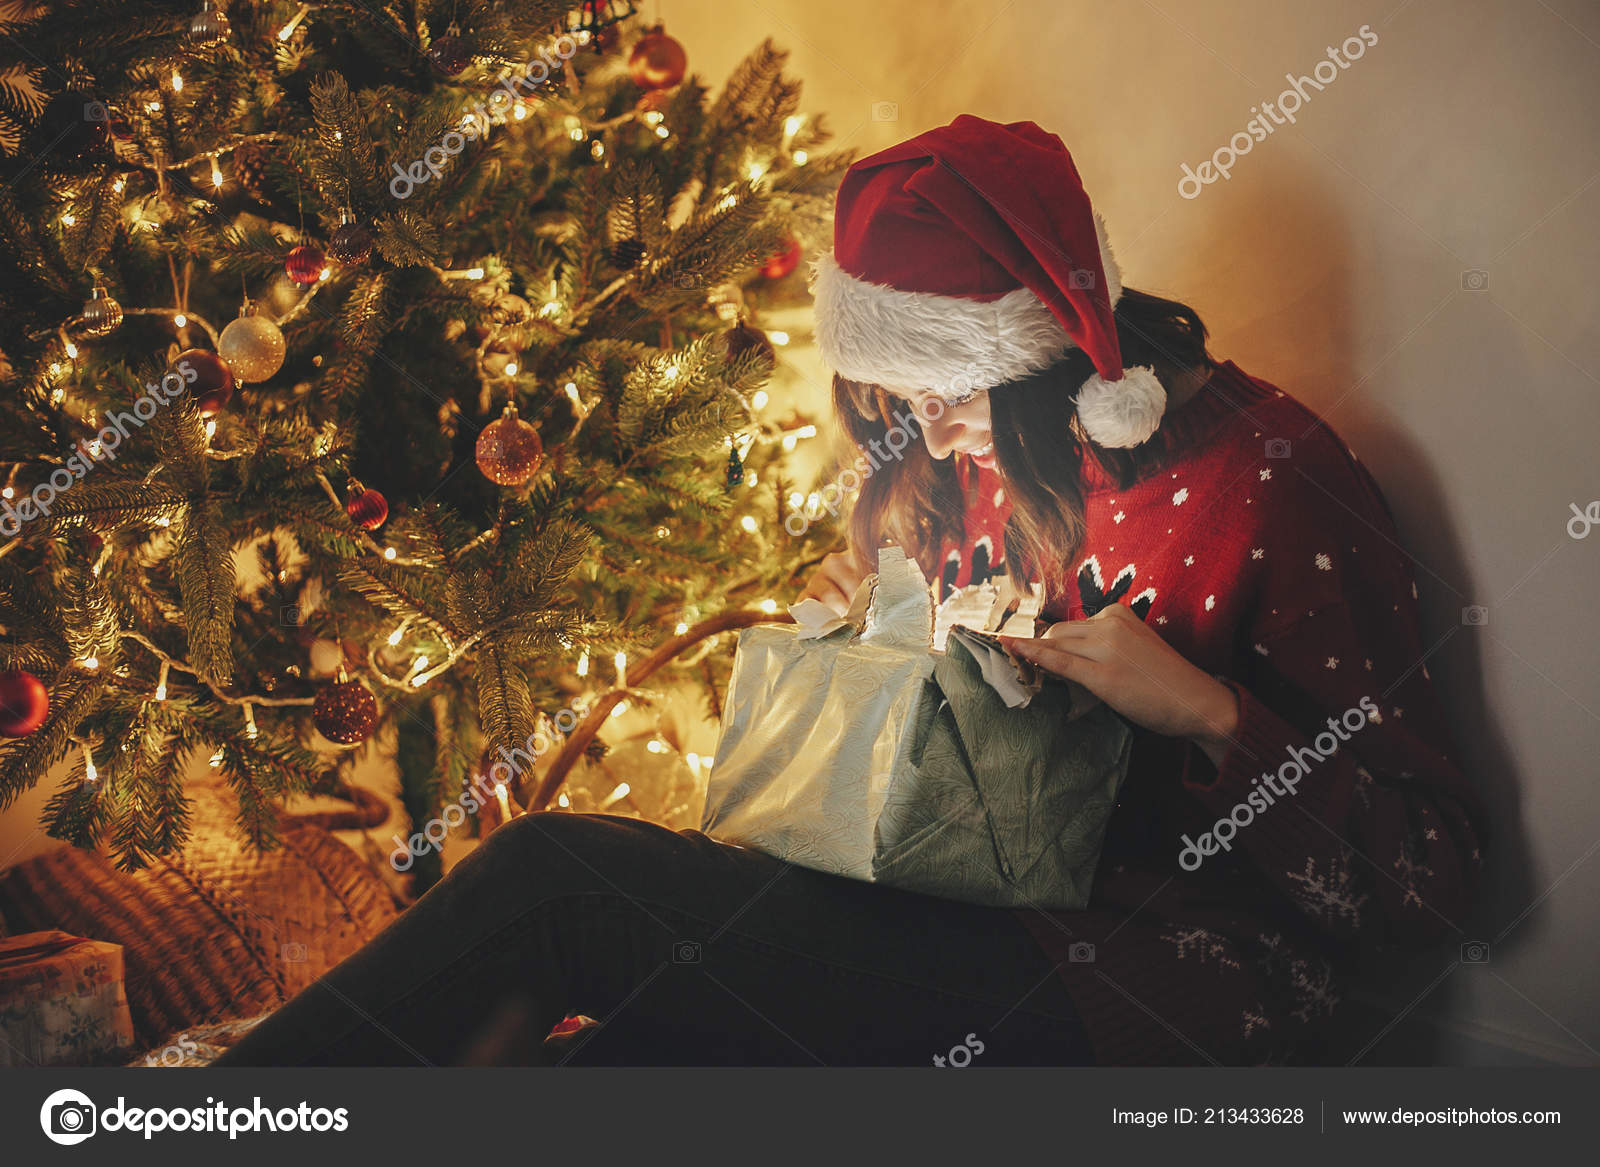 972c8d6f8f942 Merry Christmas Happy Girl Santa Hat Opening Magic Christmas Gift — Stock  Photo